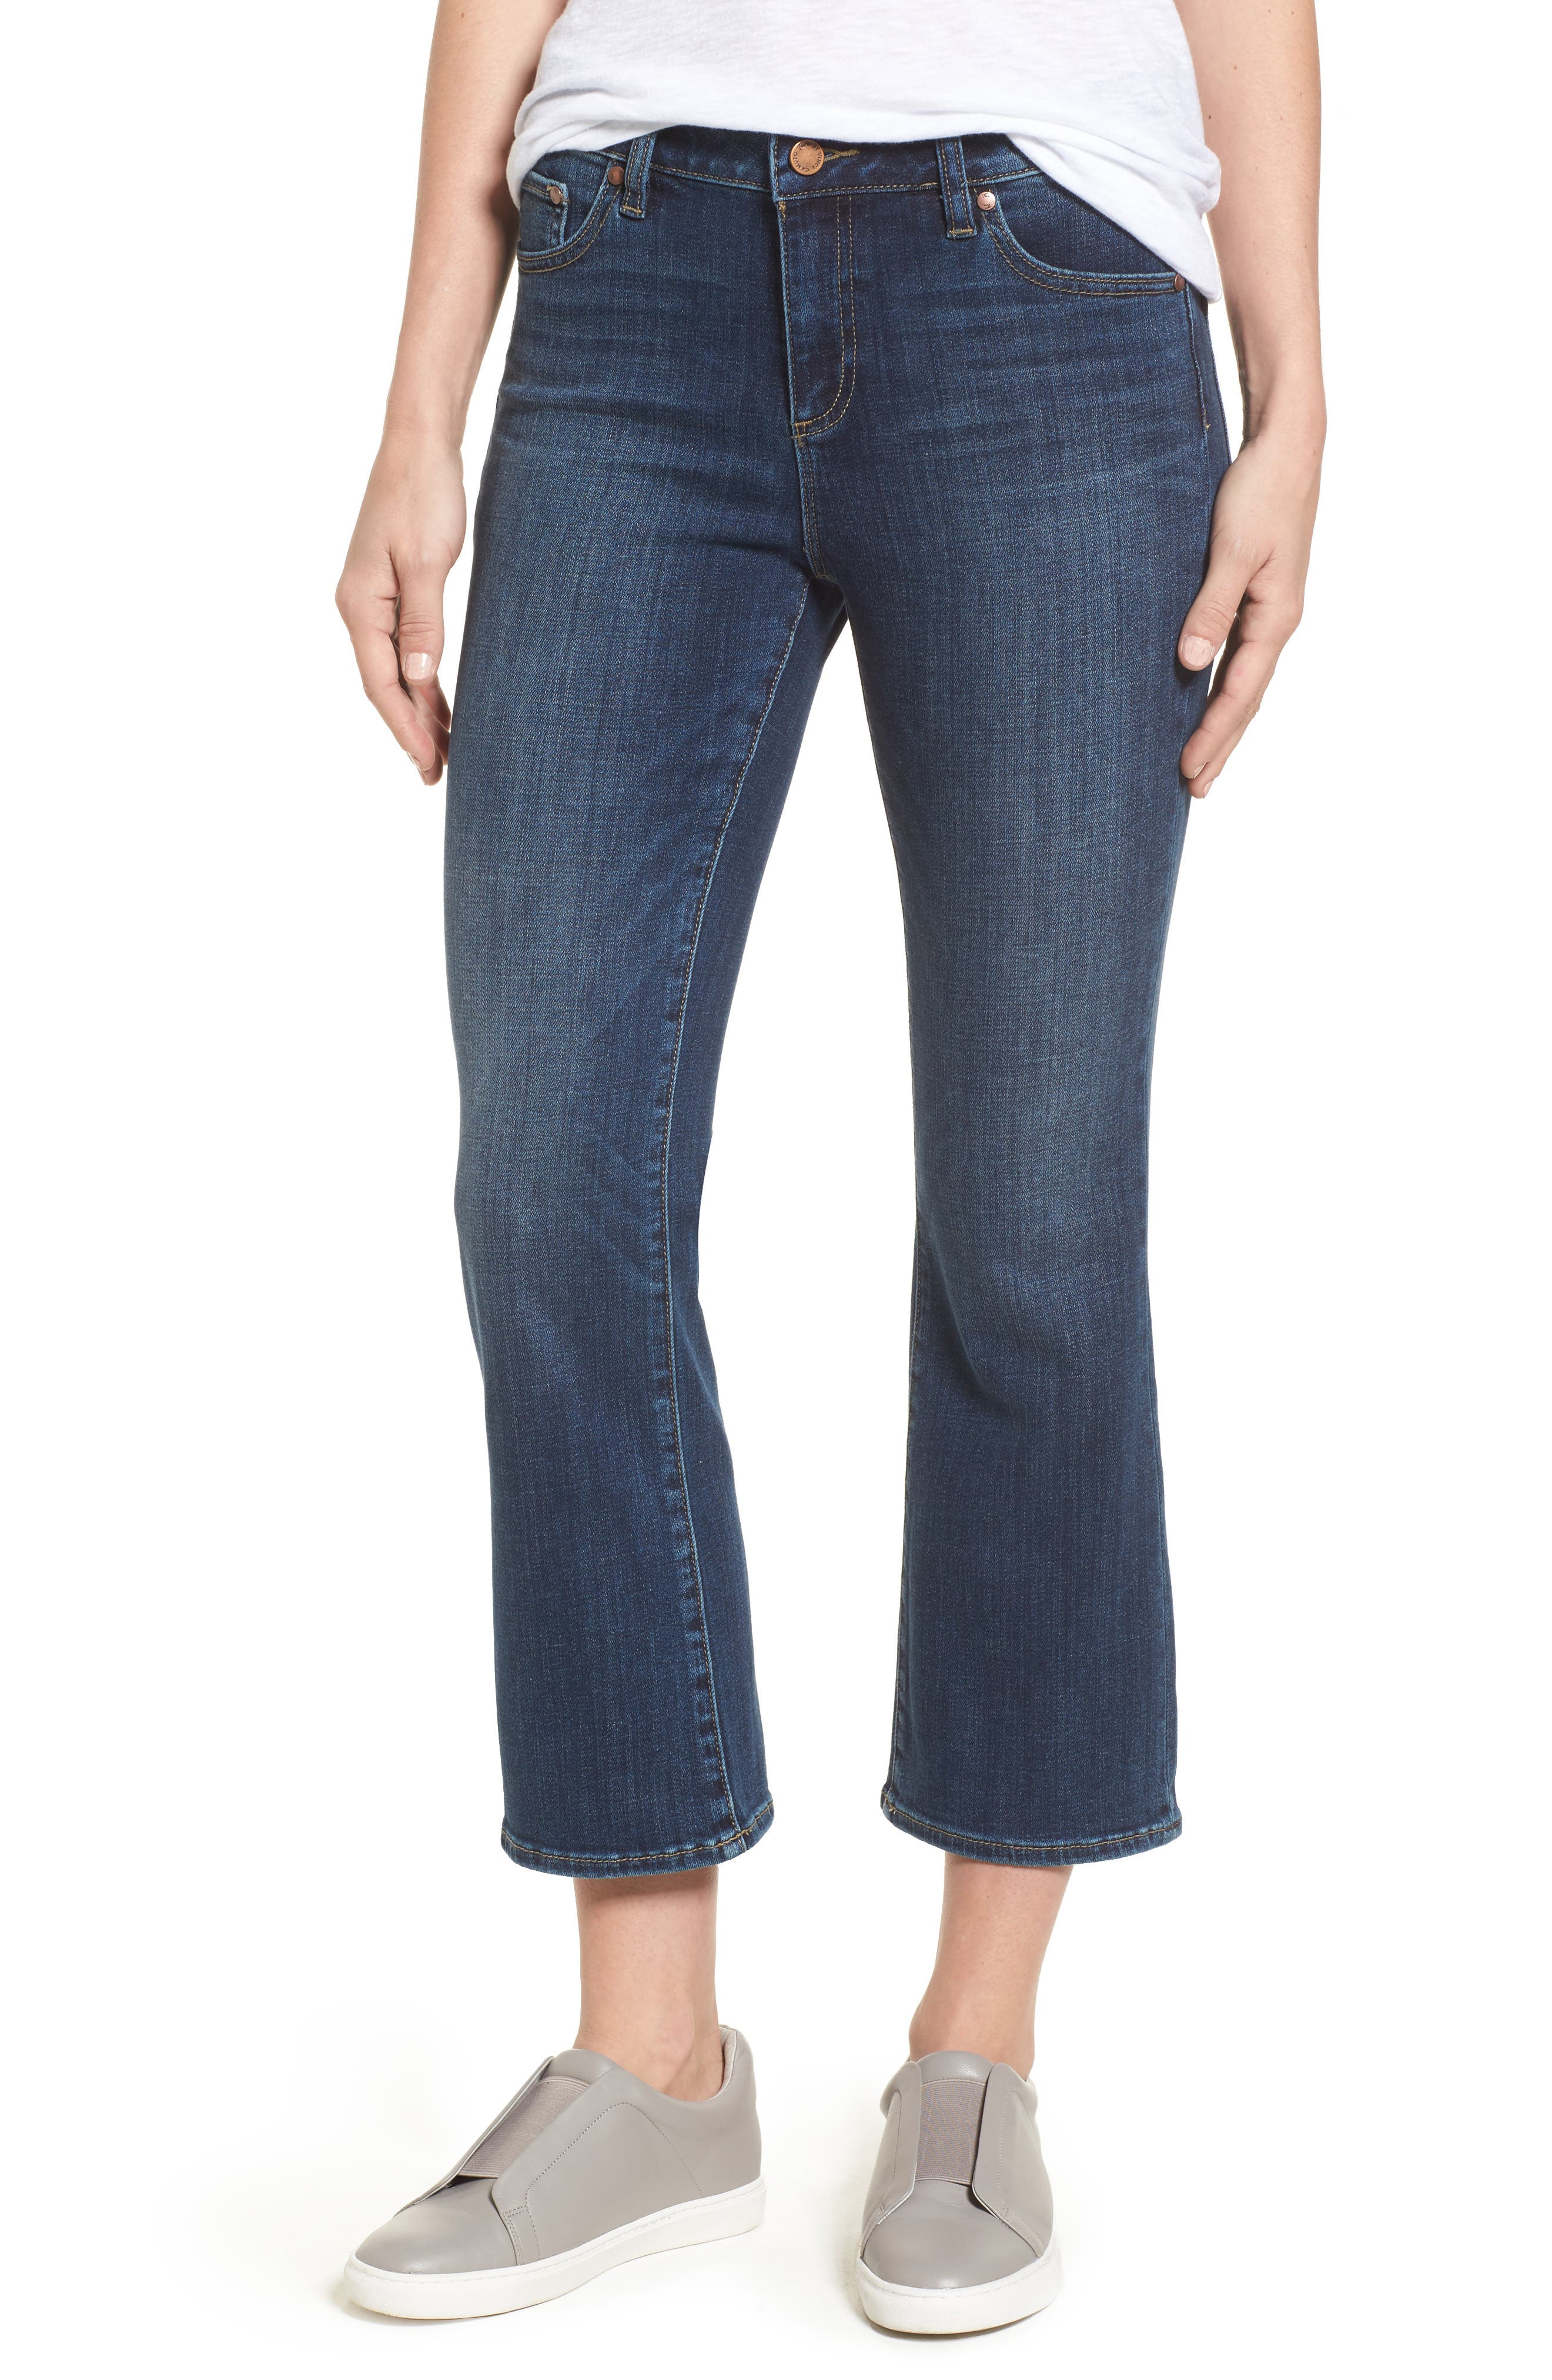 Two by Vince Camuto Cropped Flare Jeans,                             Main thumbnail 1, color,                             MID VINTAGE